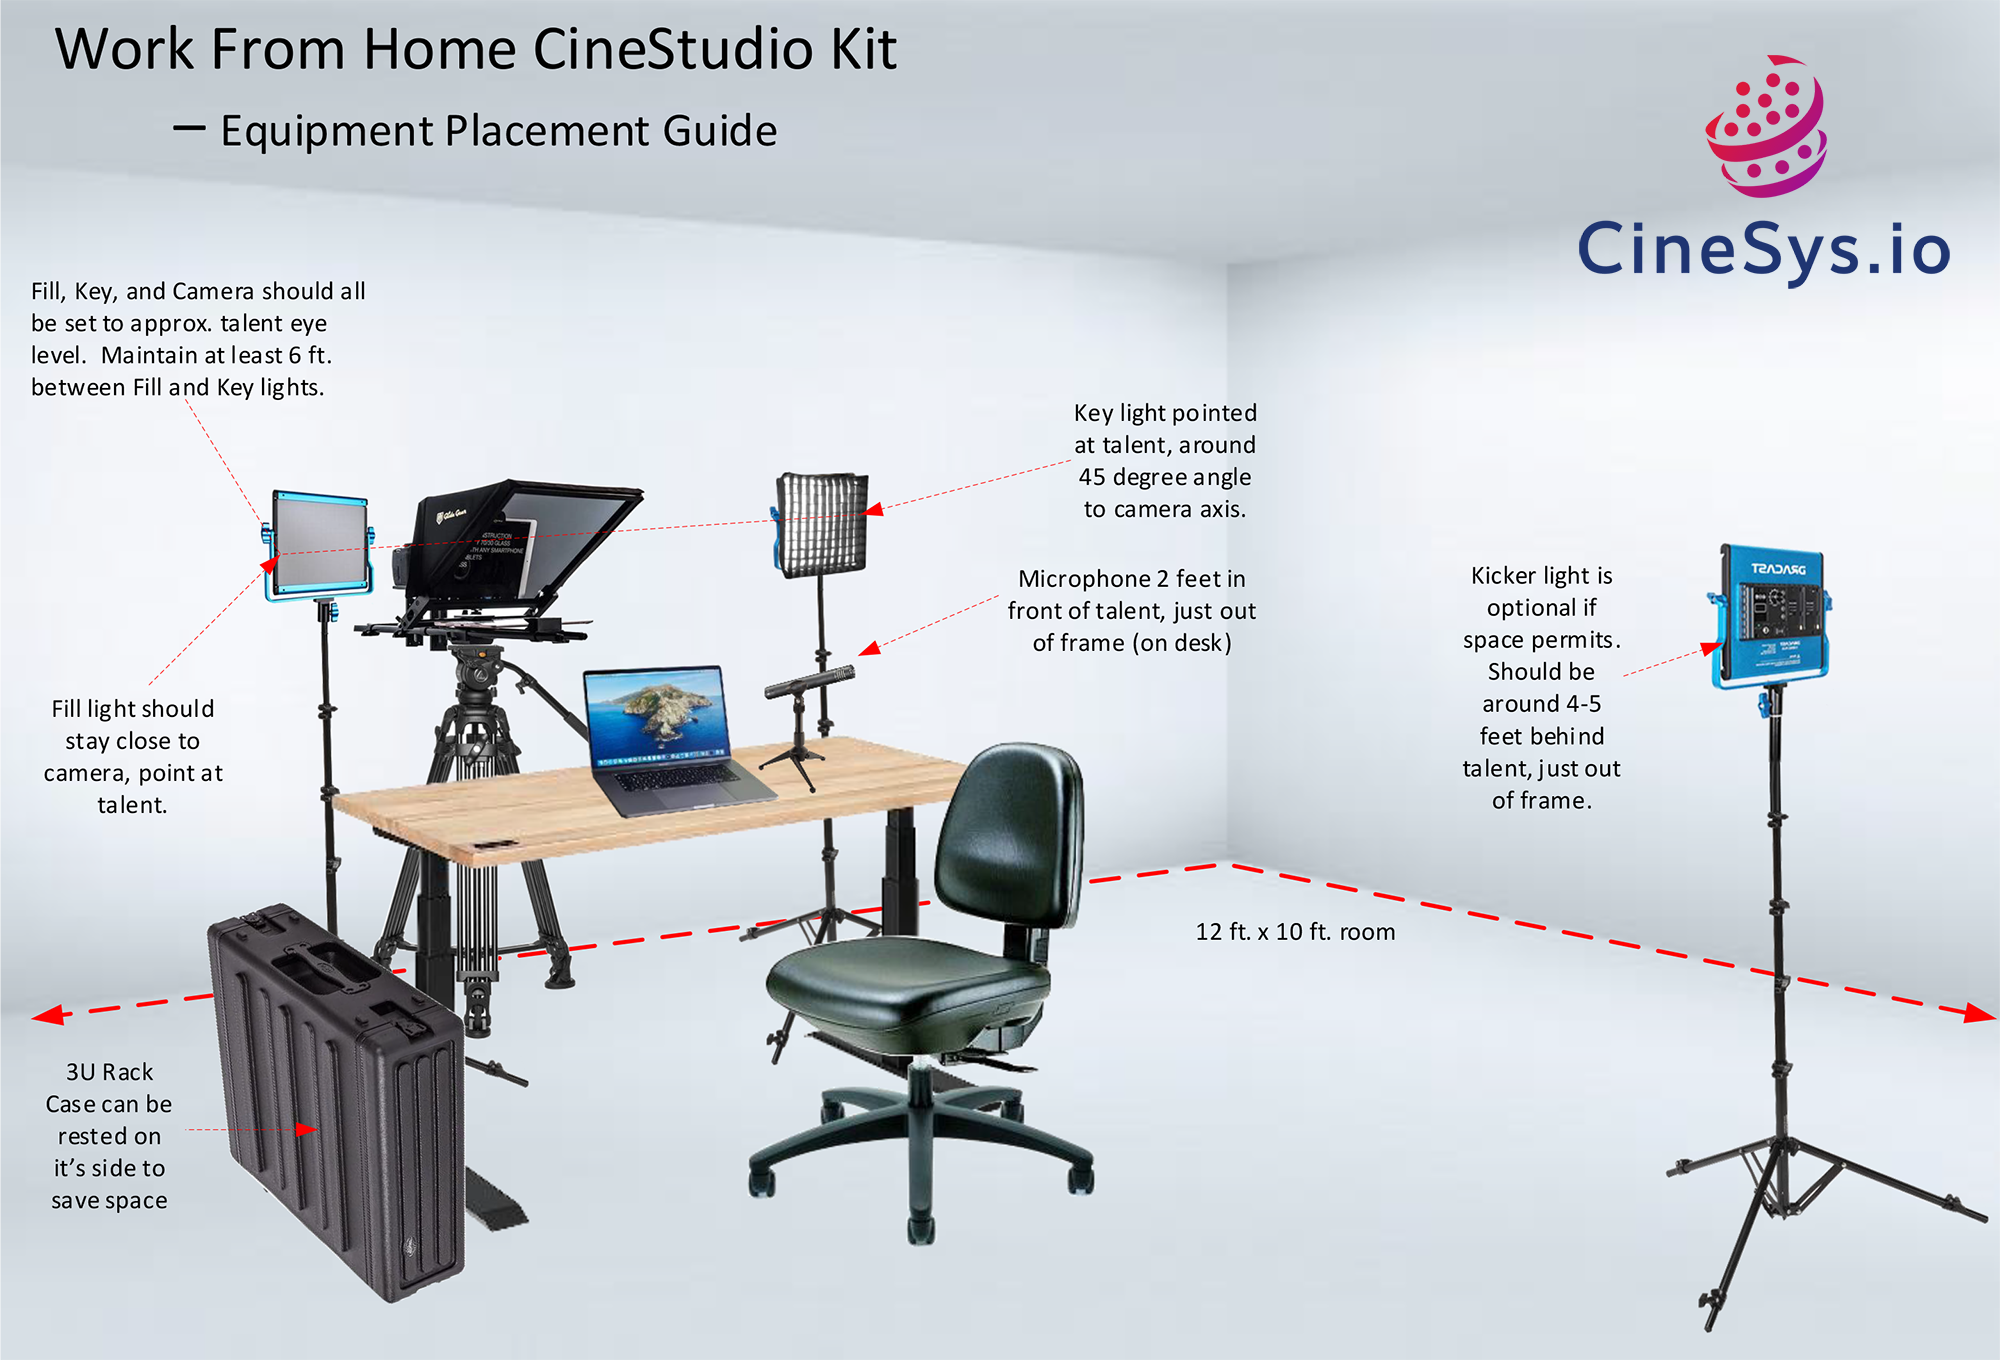 CineStudio Placement